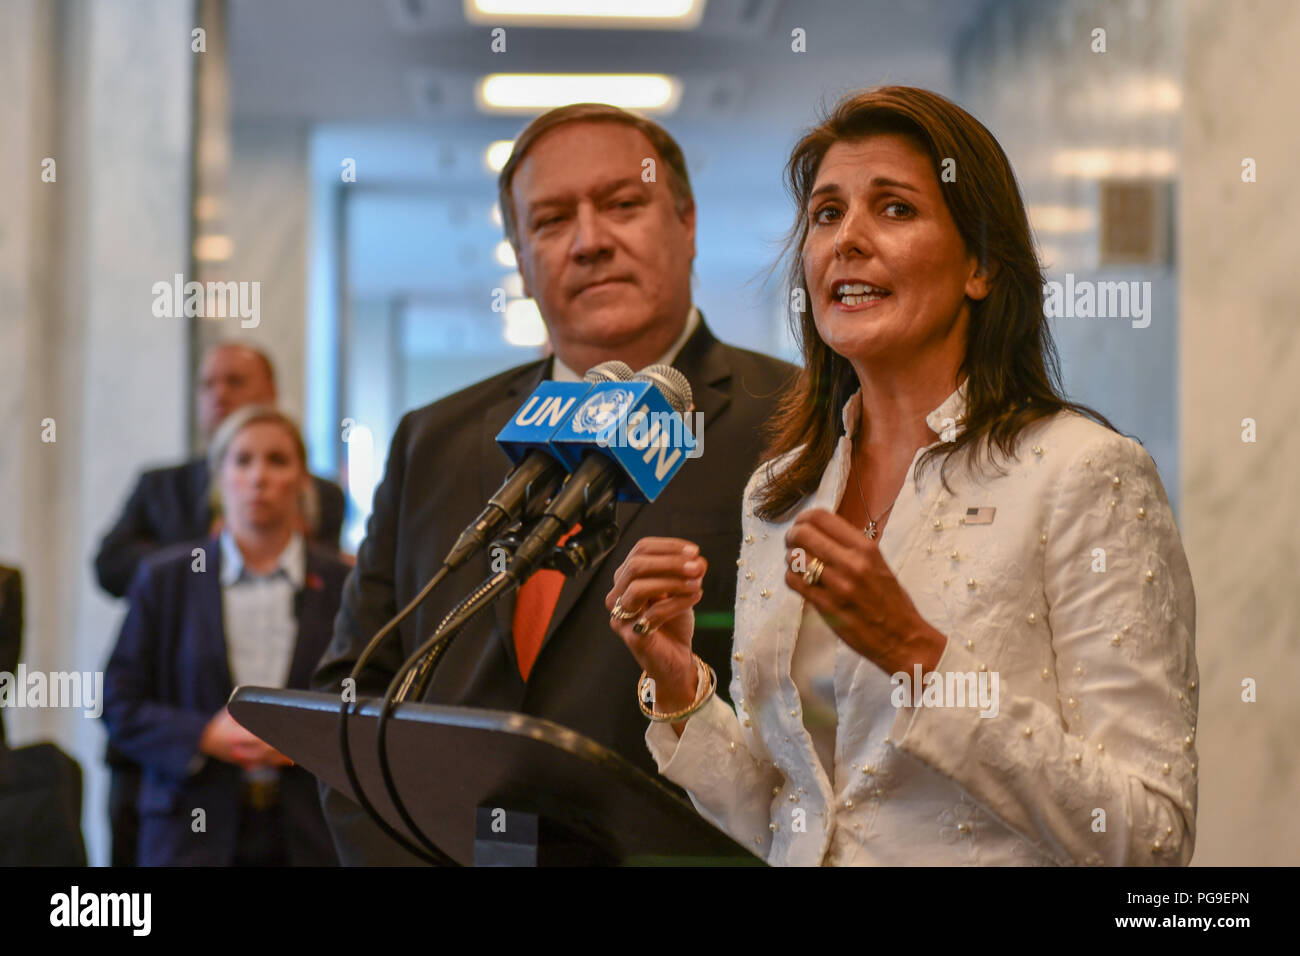 U.S. Permanent Representative to the United Nations Nikki Haley flanked by U.S. Secretary of State Michael R. Pompeo addresses the press in New York, New York on July 20, 2018. - Stock Image